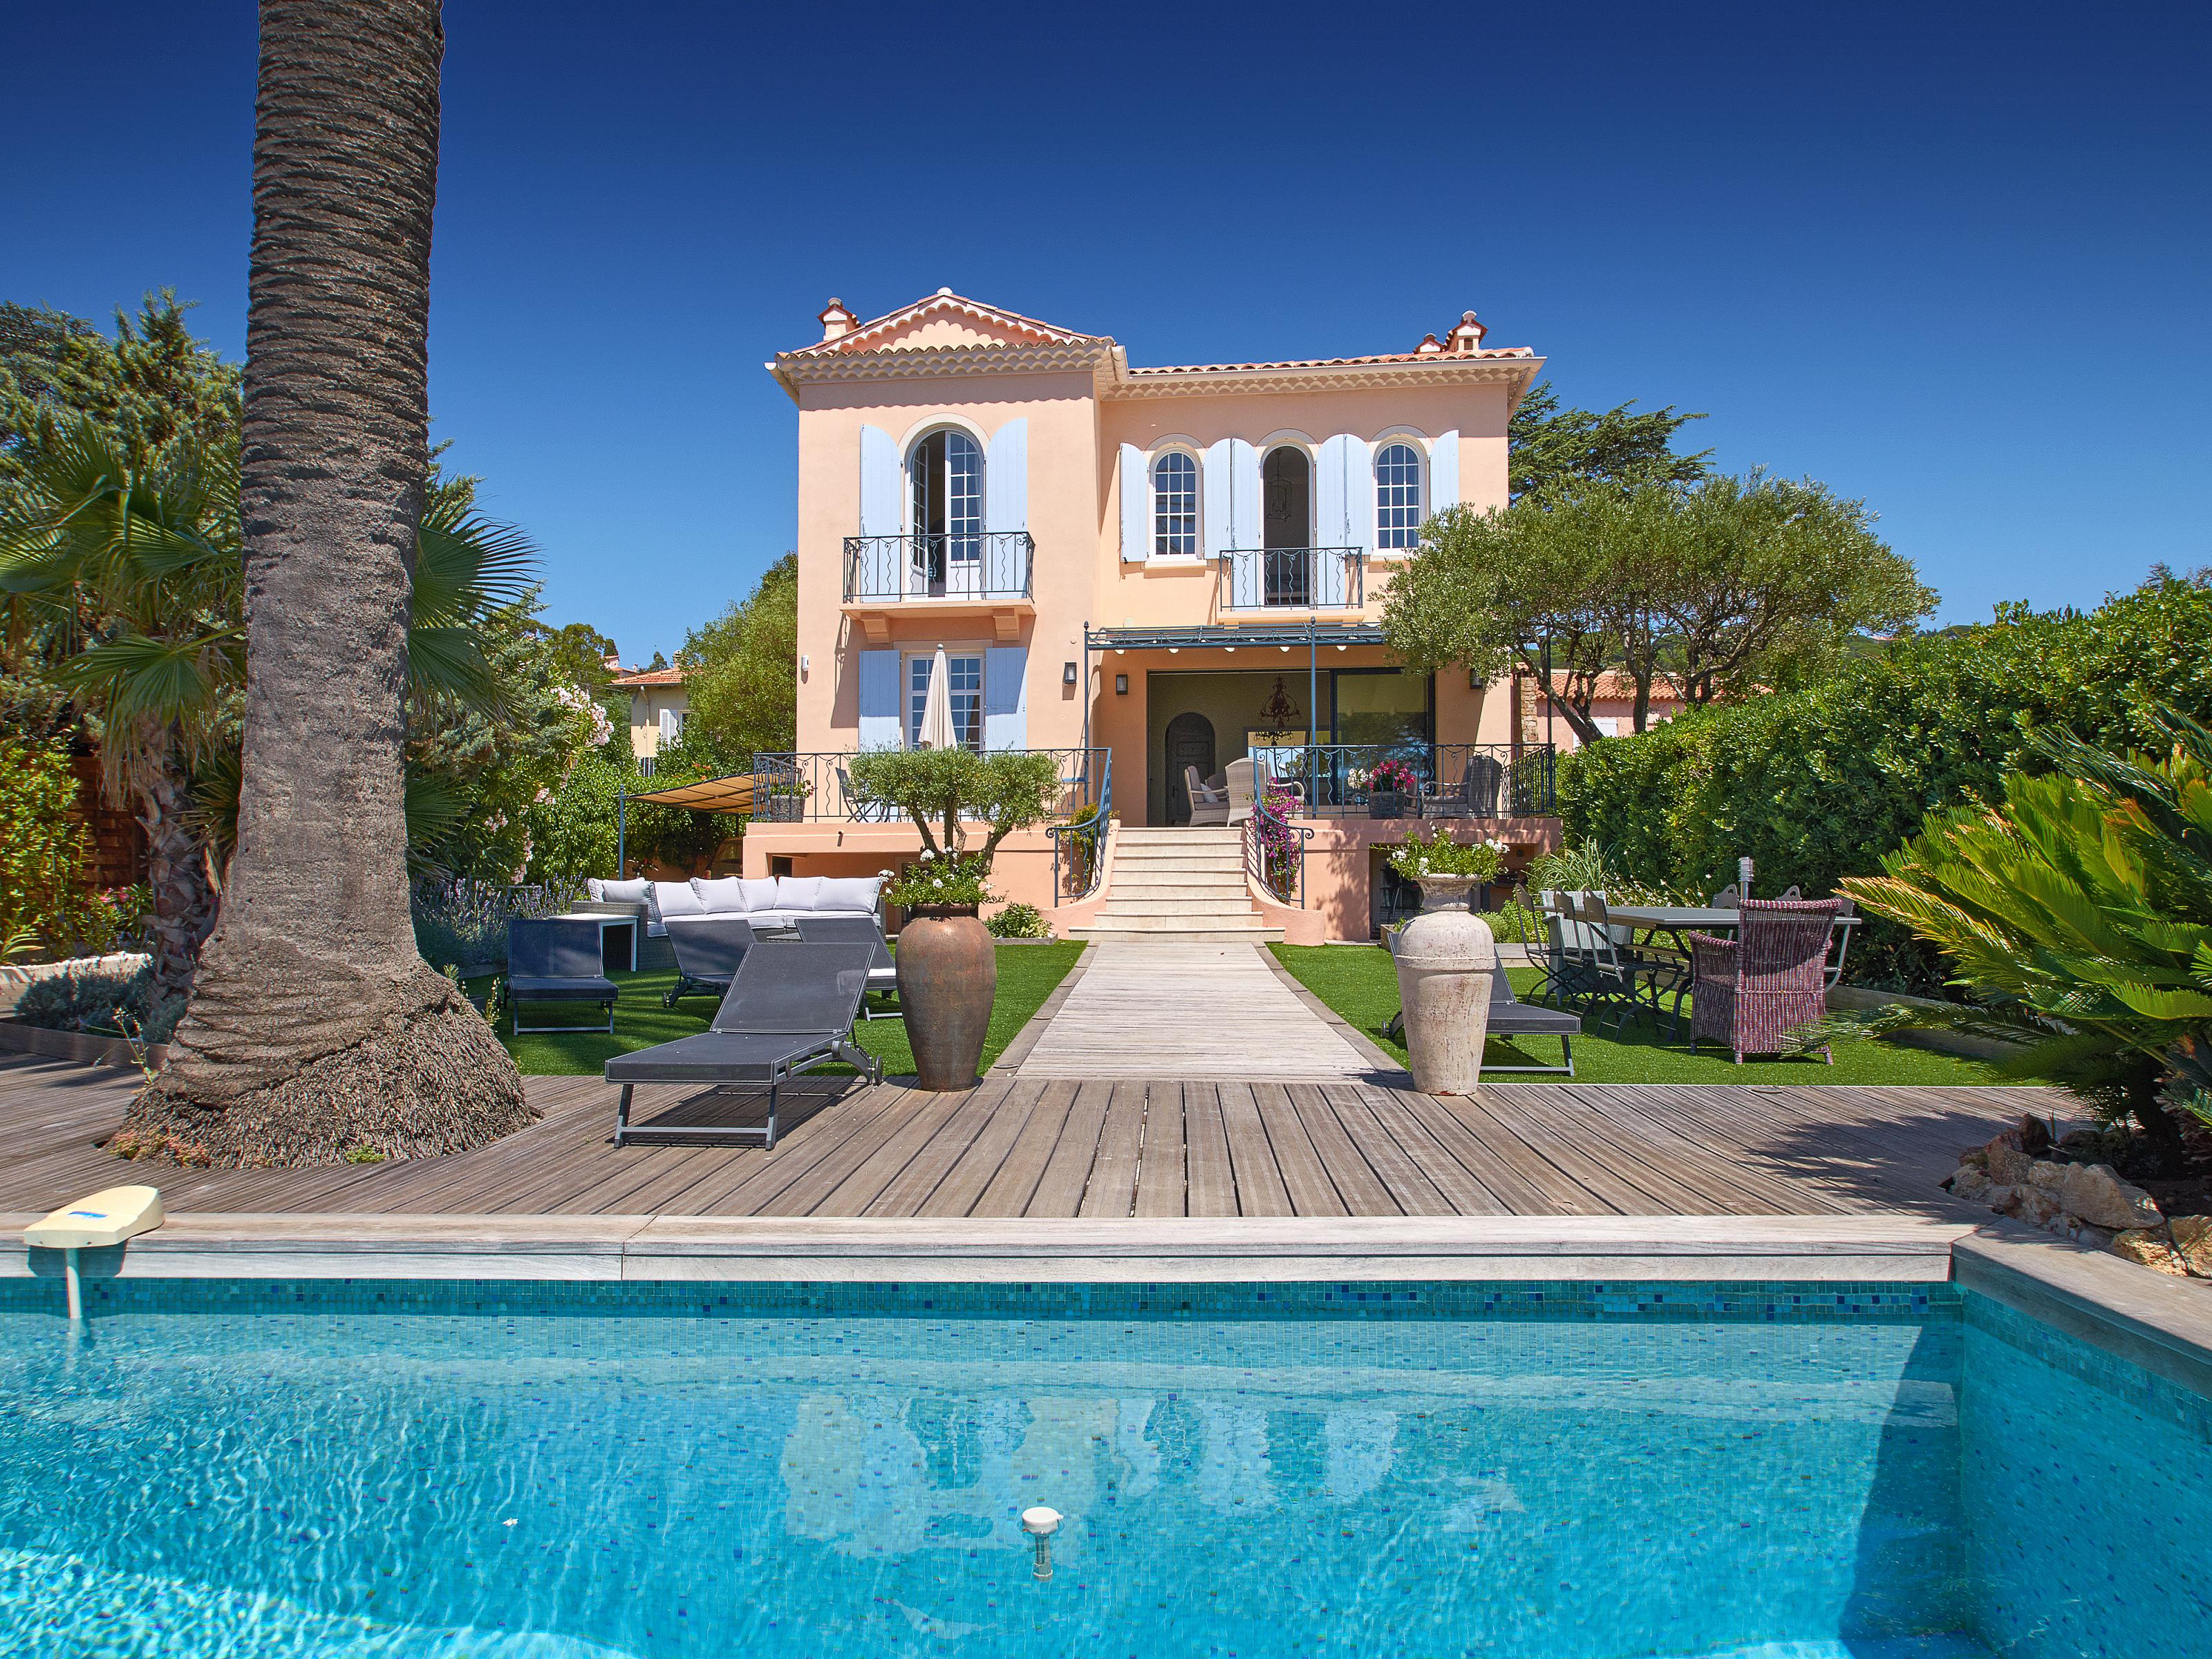 Villa per Vendita alle ore First line 'Belle Epoque' property with panoramic sea views Saint Maxime Other Provence-Alpes-Cote D'Azur, Provenza-Alpi-Costa Azzurra 83120 Francia